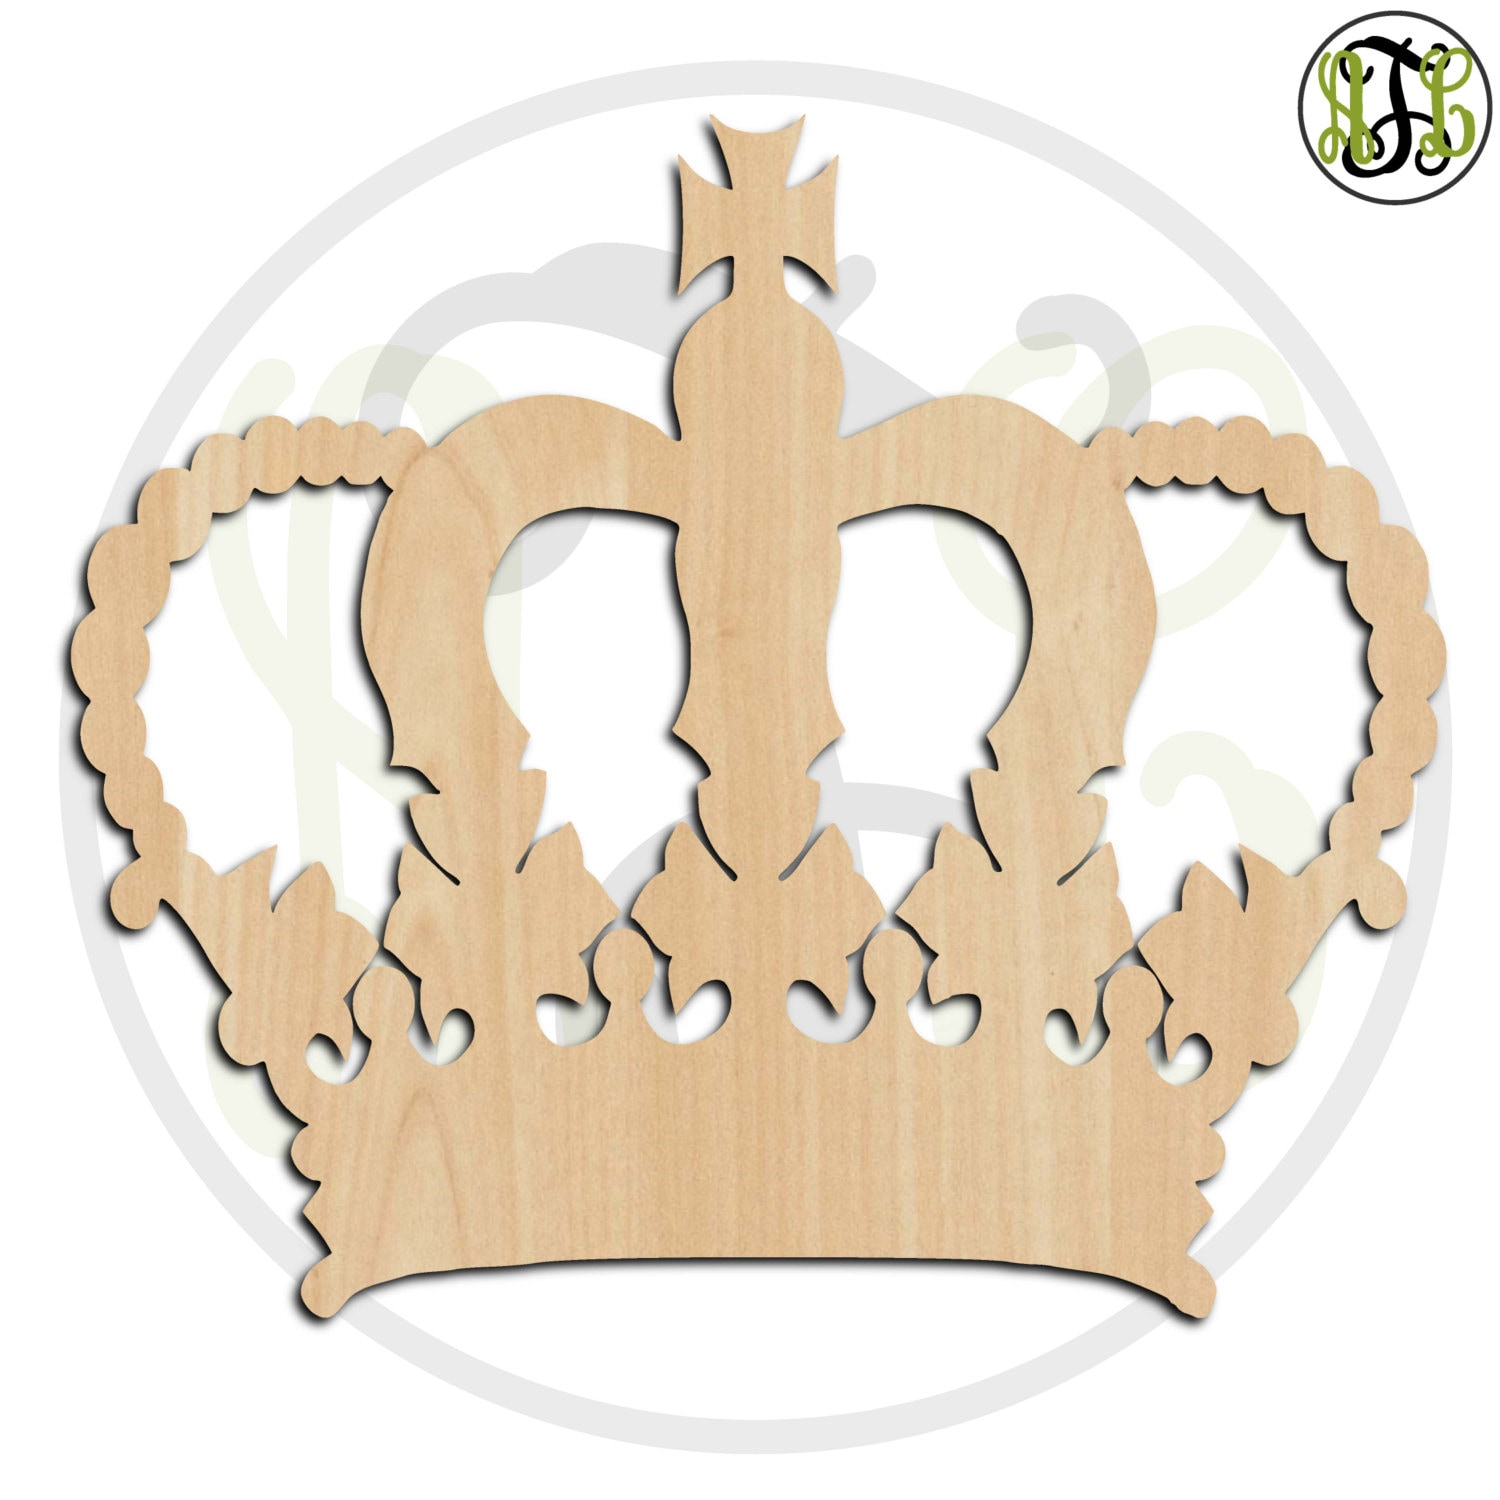 Crown 17- 24417- Cutout, unfinished, wood cutout, wood craft, laser ...